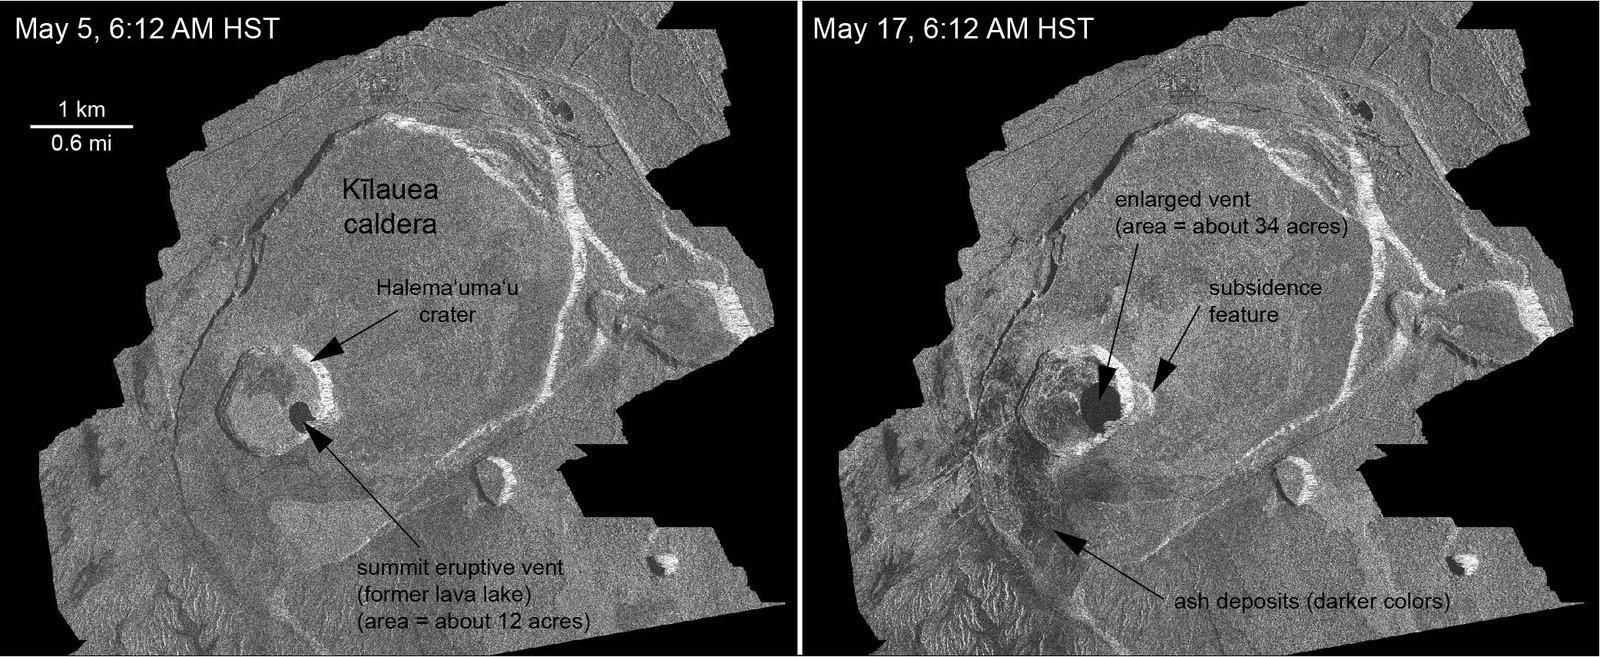 Kilauea - Halema'uma'u crater - Radar images taken by the Italian Space Agency's Cosmo-SkyMed satellite system between 05.17 and 31 May 2018 / 18h HST